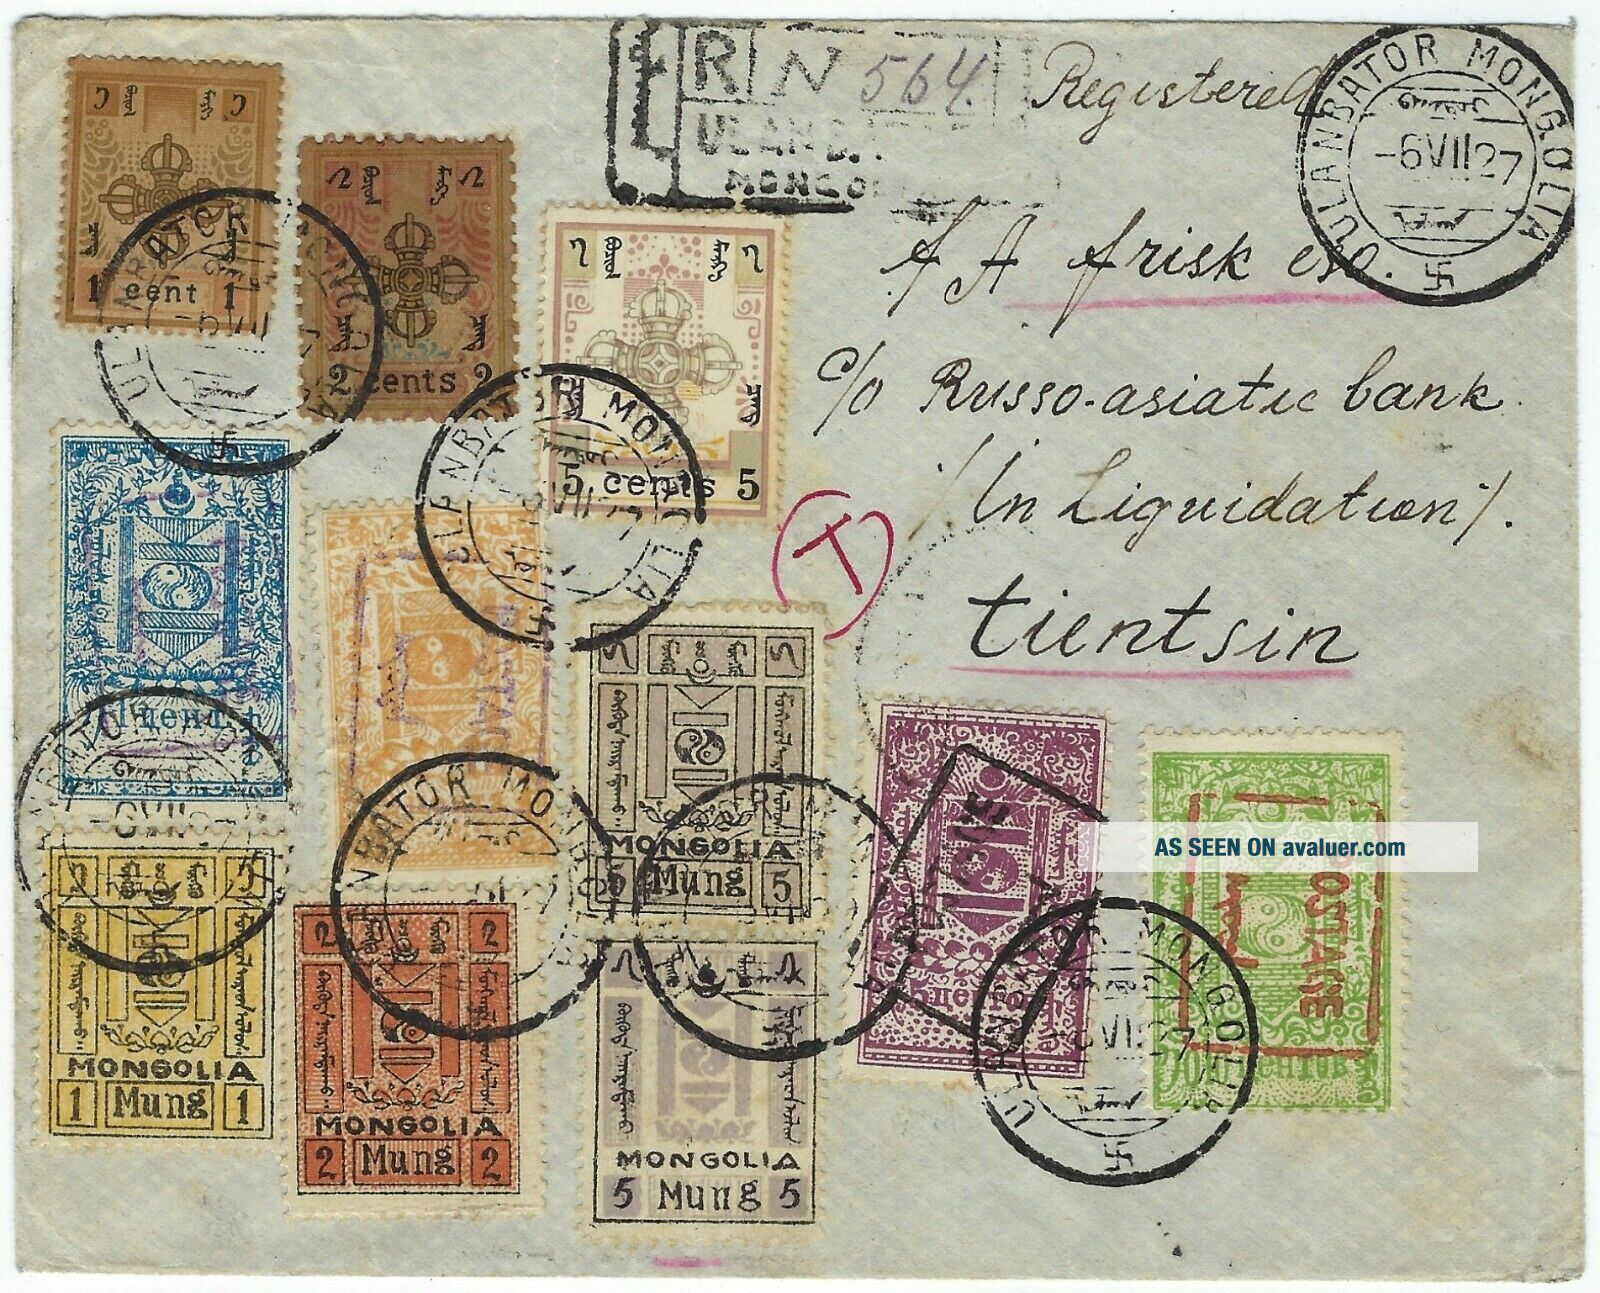 Mongolia 1927 reg multi franked cover to Tientsin China with 3 perprints